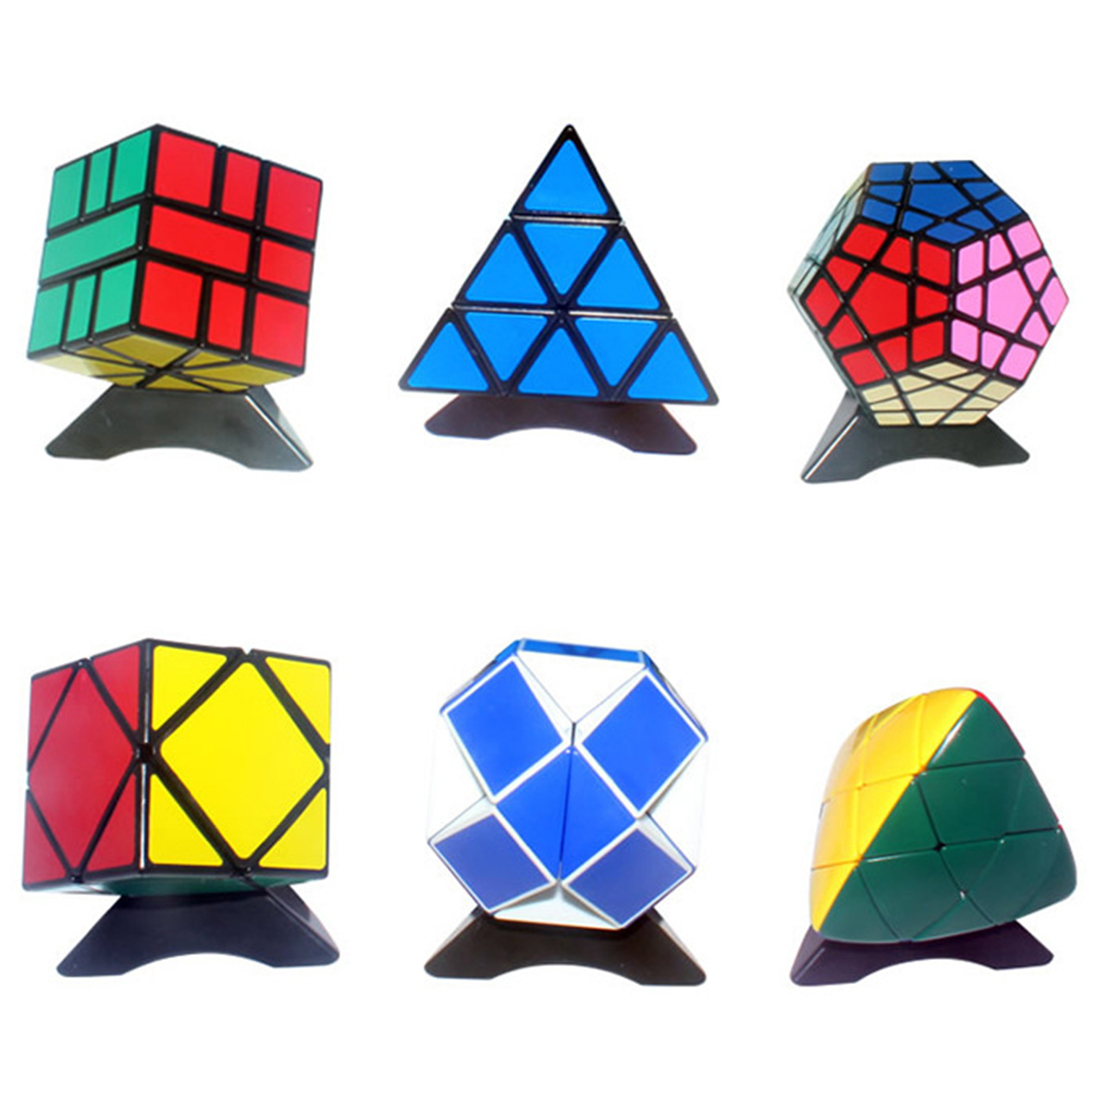 Shengshou Irregular Dice Pacakge 6-Piece Magic Dice Set Velocity Puzzle As New Yr Christmas Present